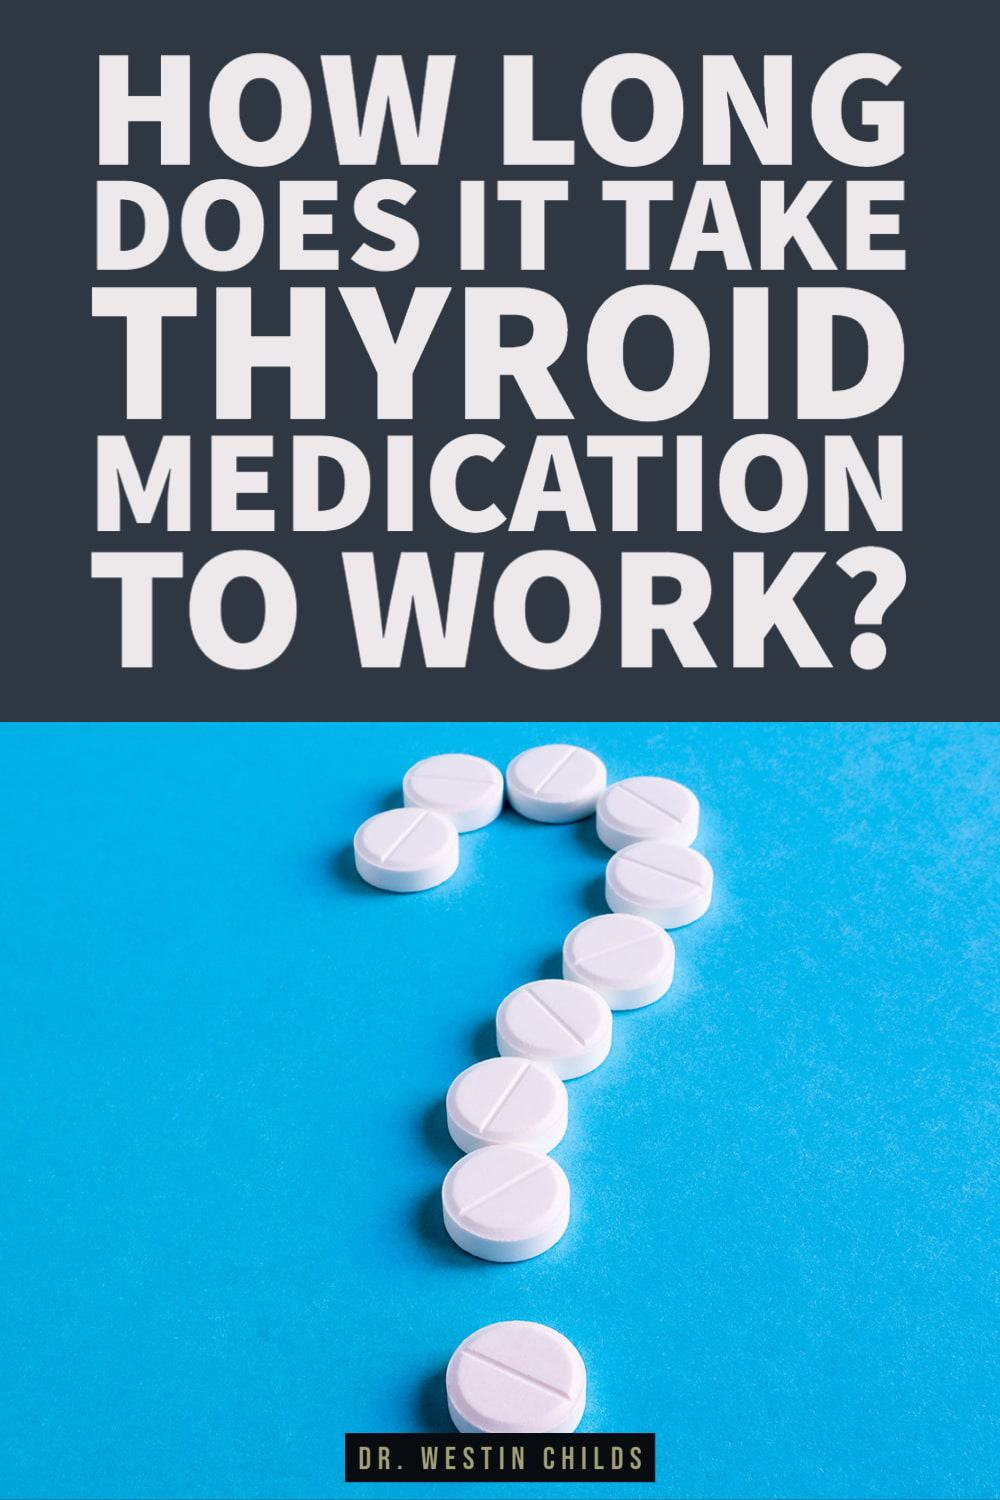 is your thyroid medication working?